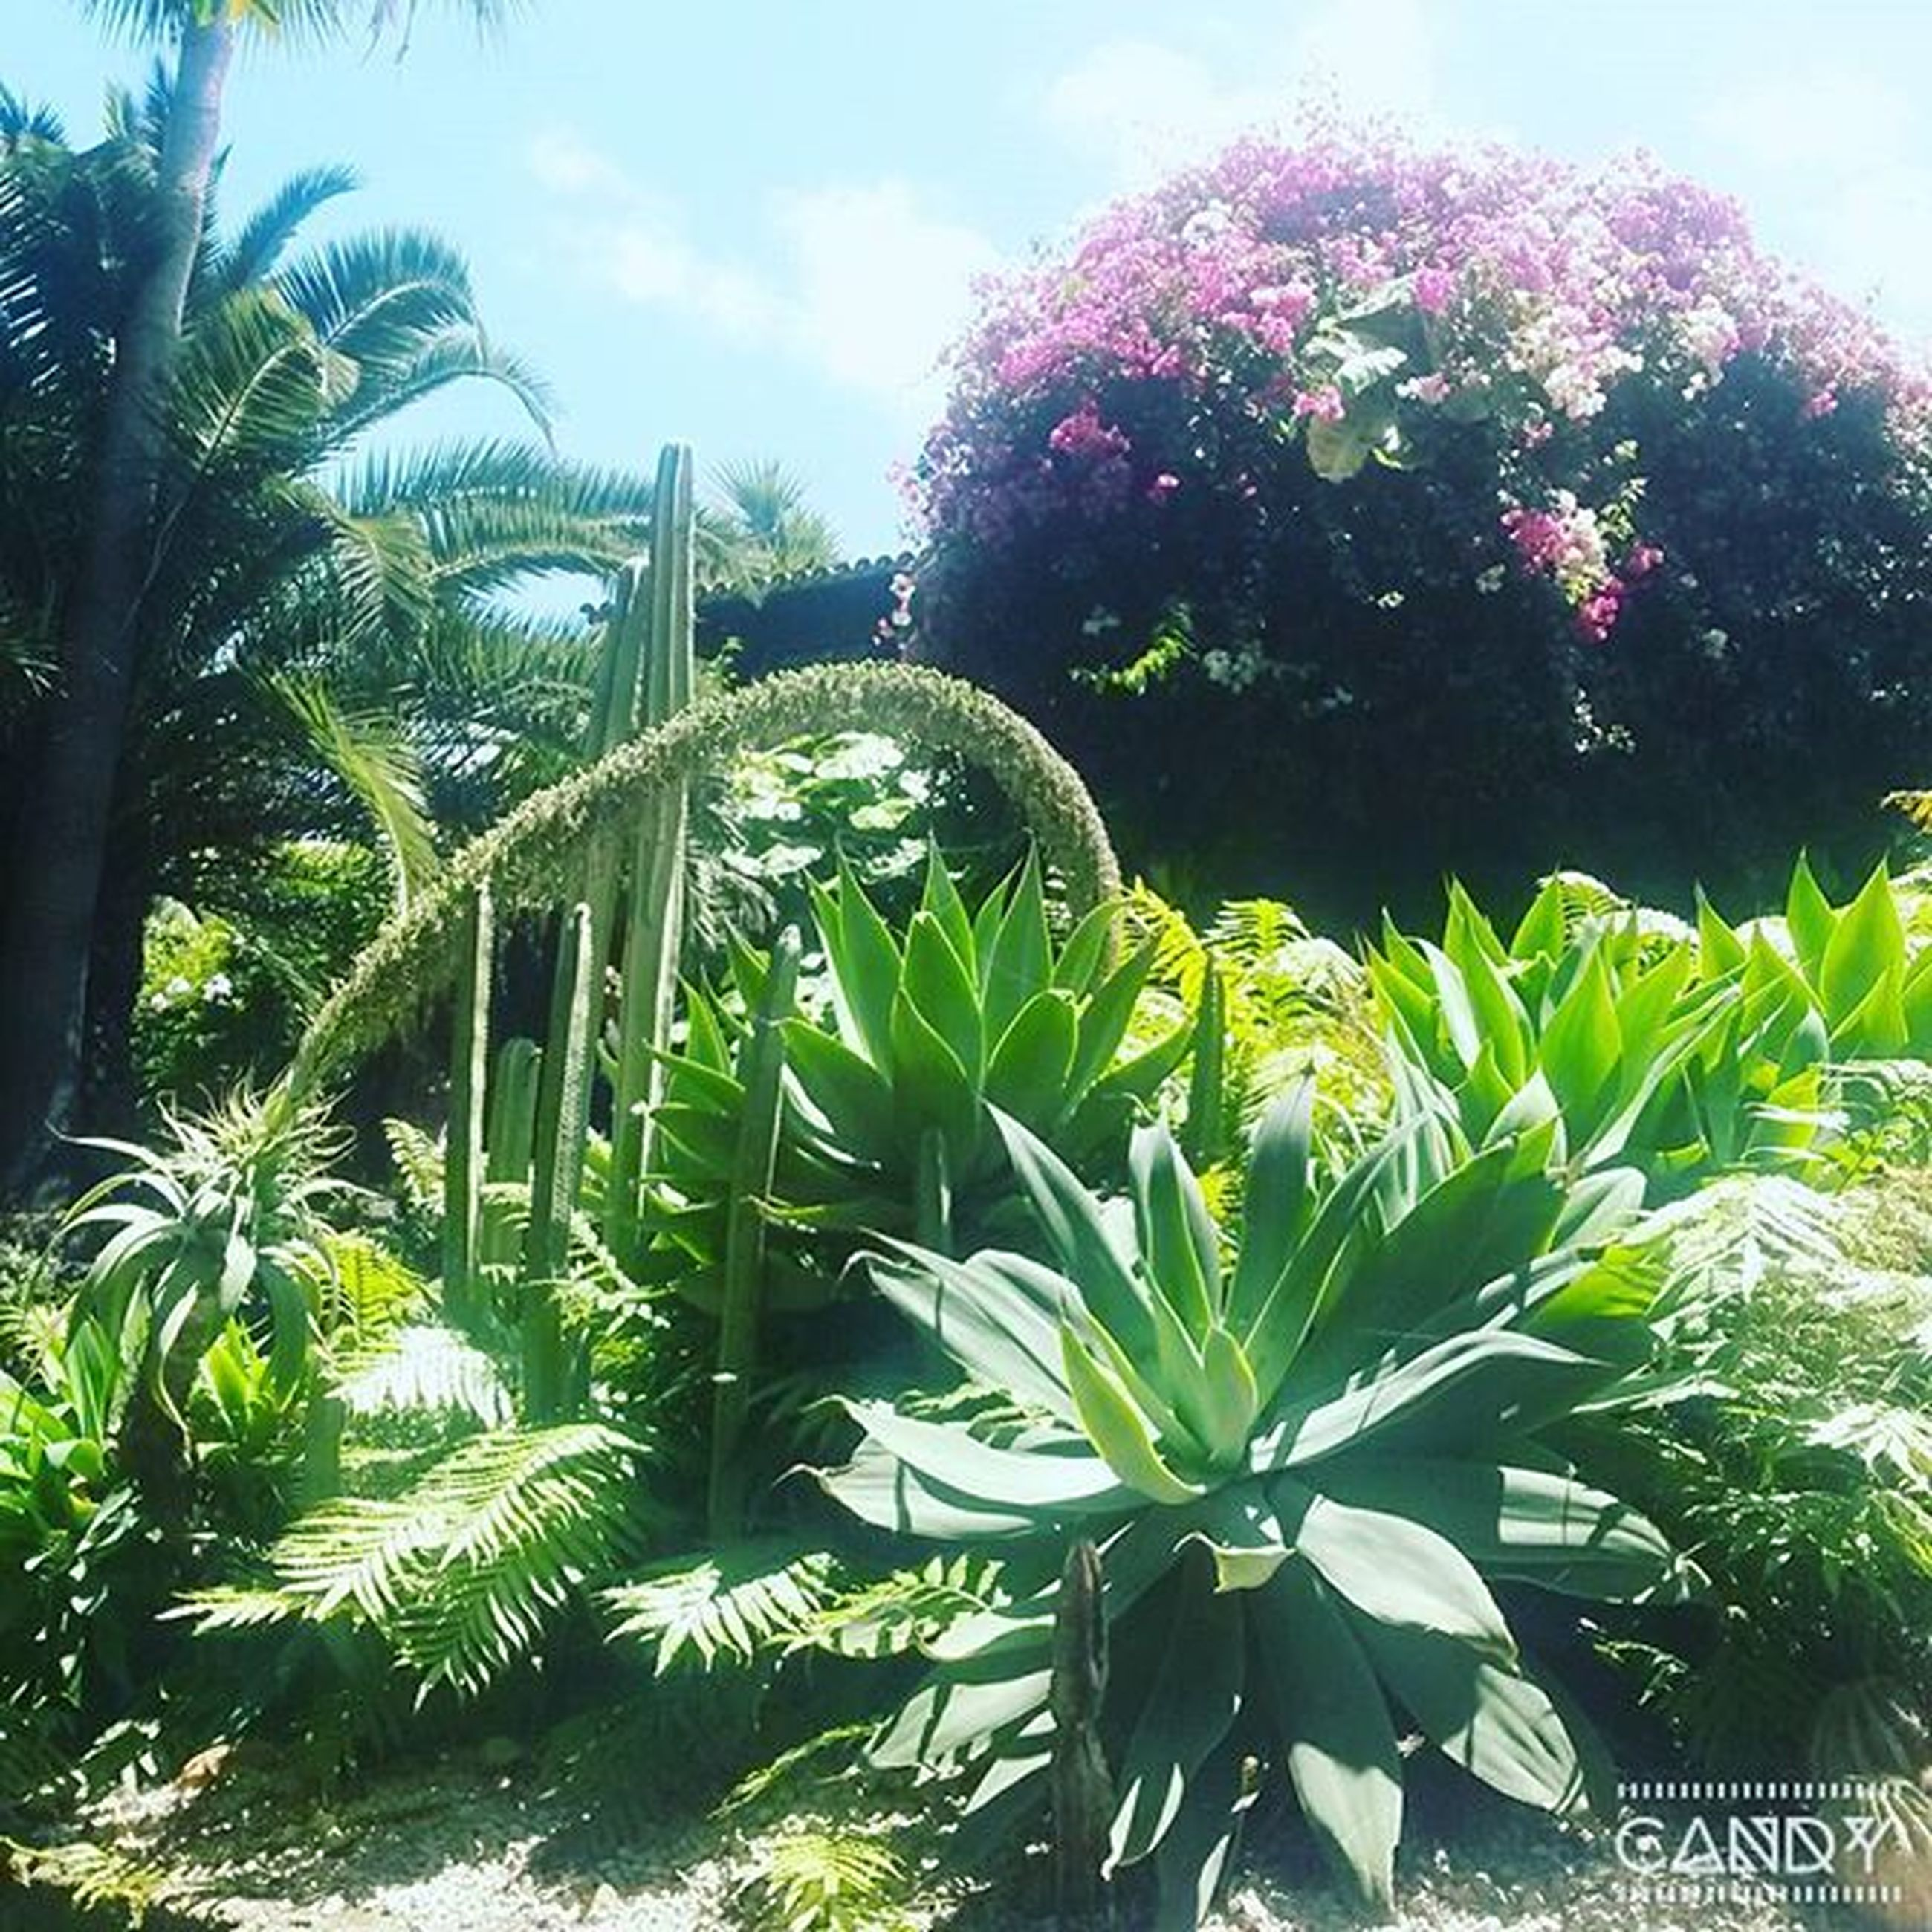 growth, tree, palm tree, low angle view, plant, sky, green color, leaf, nature, flower, park - man made space, beauty in nature, day, formal garden, outdoors, built structure, no people, cactus, sunlight, architecture